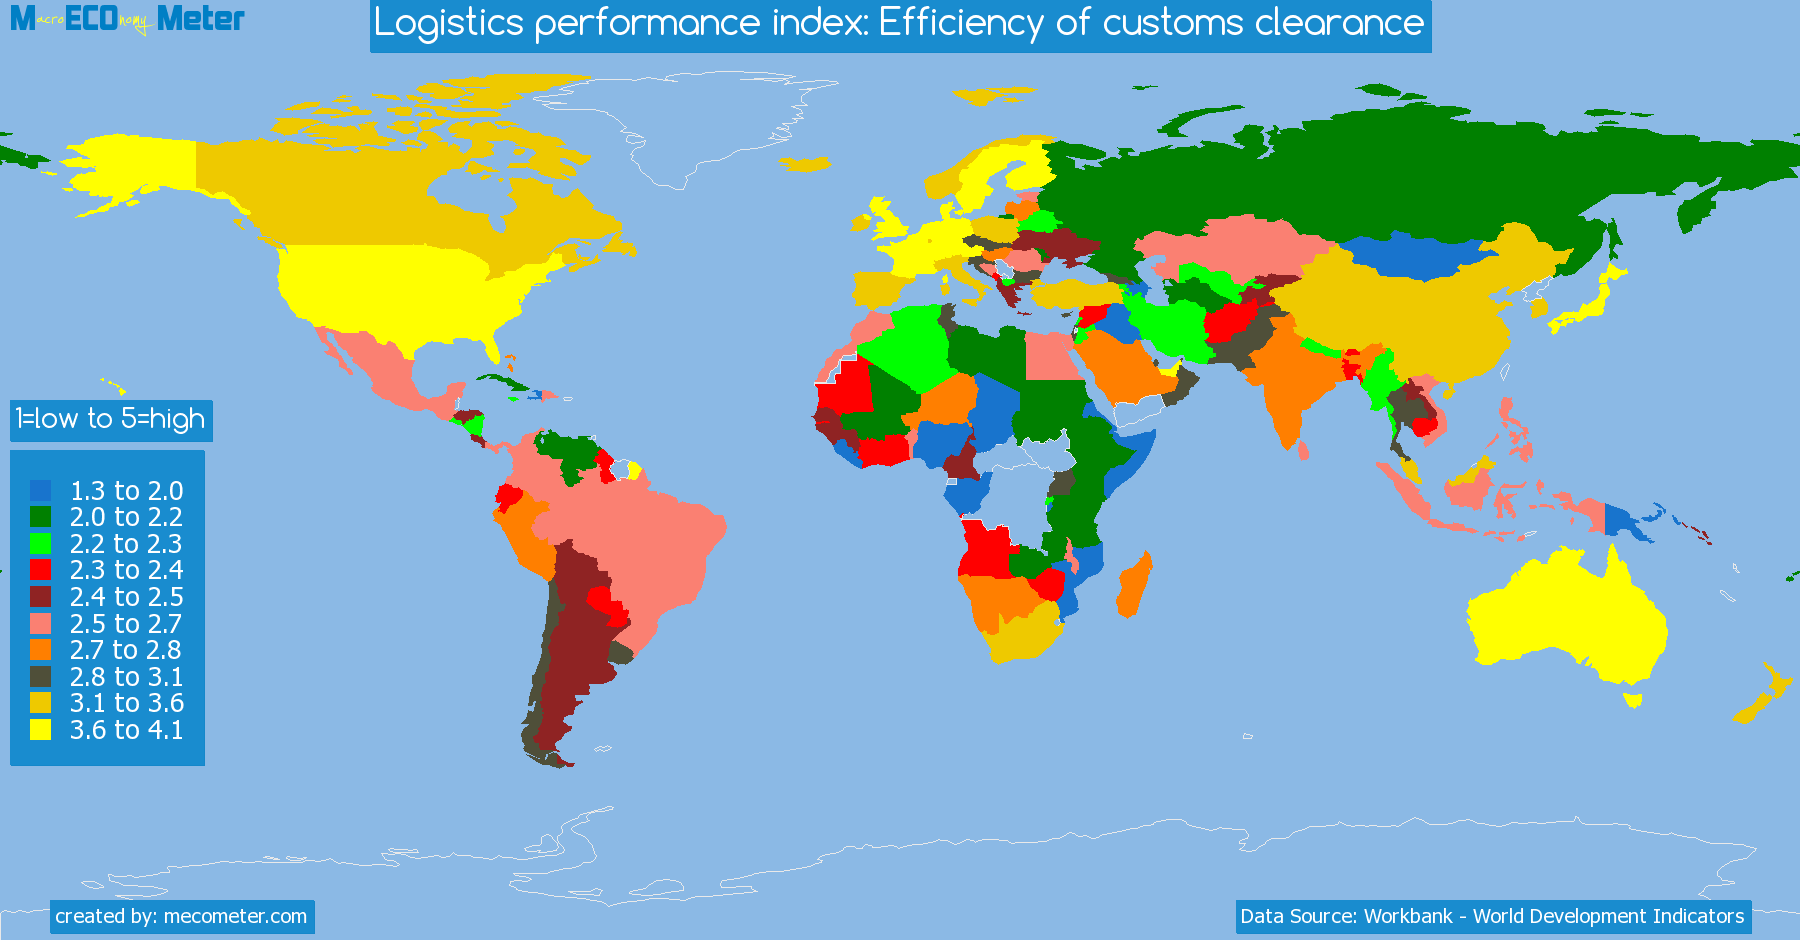 list of countries by Logistics performance index: Efficiency of customs clearance